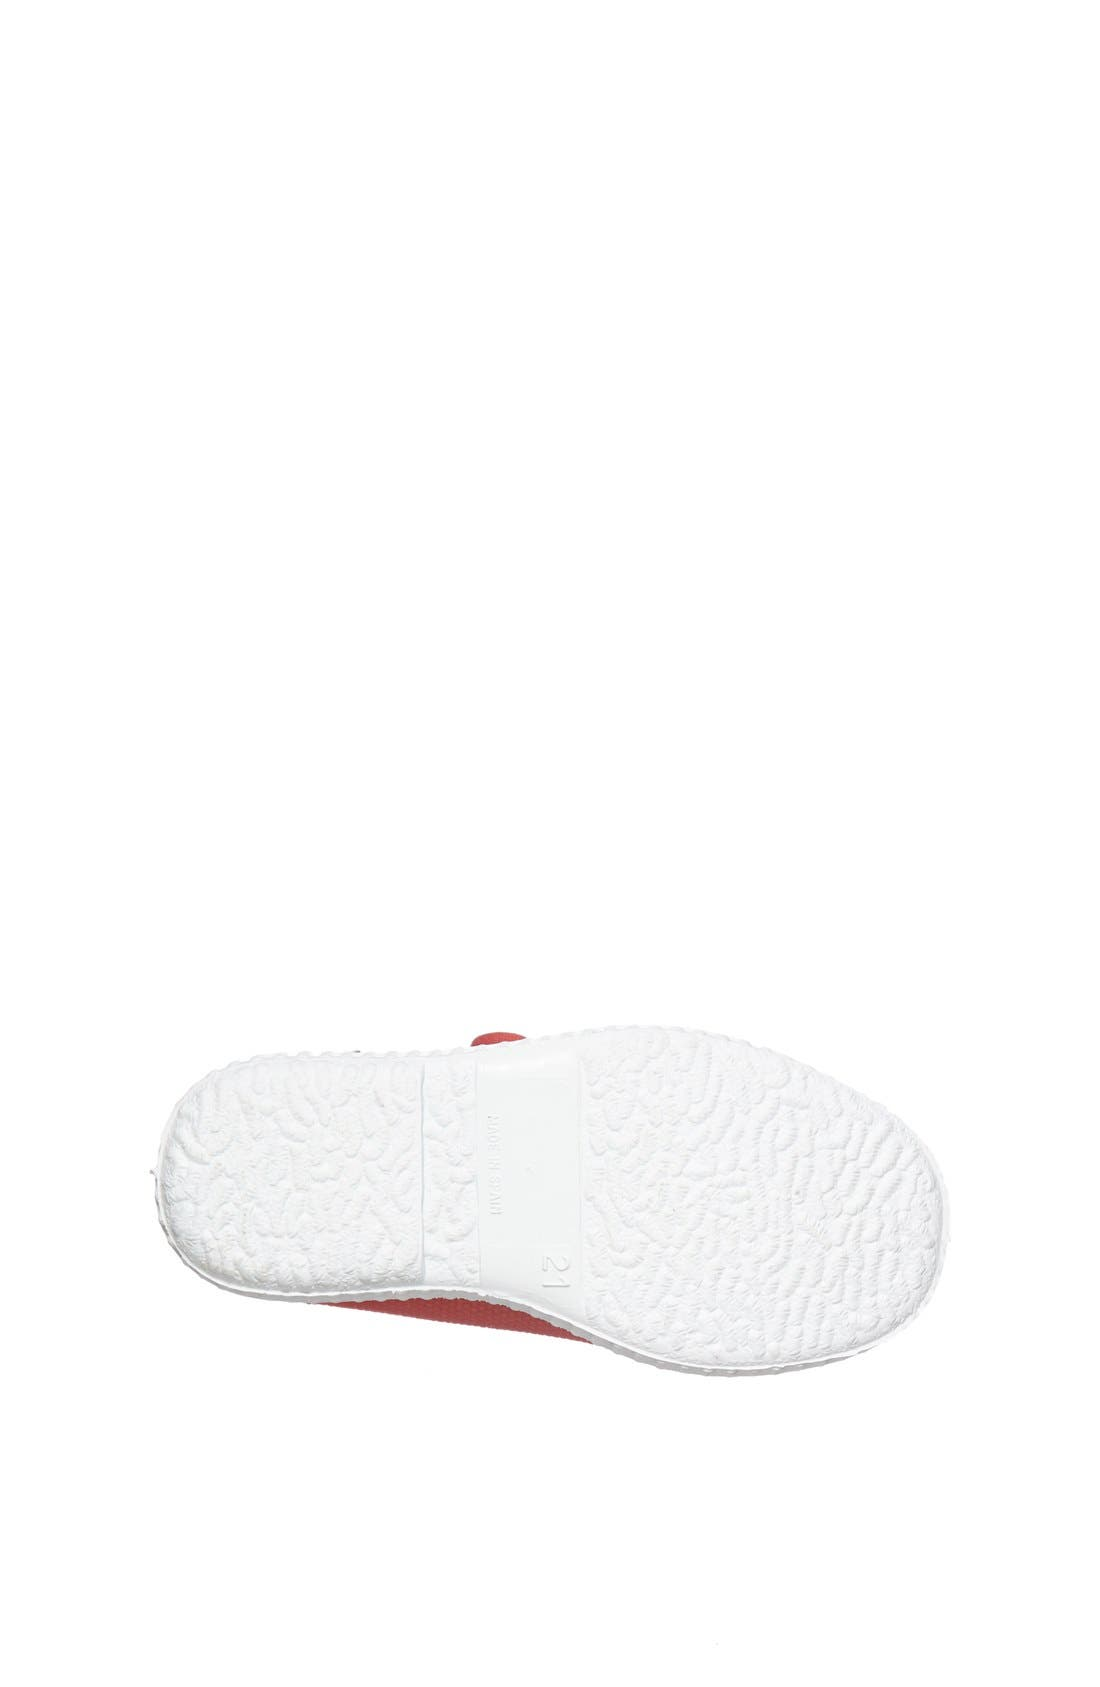 Canvas Sneaker,                             Alternate thumbnail 4, color,                             Red